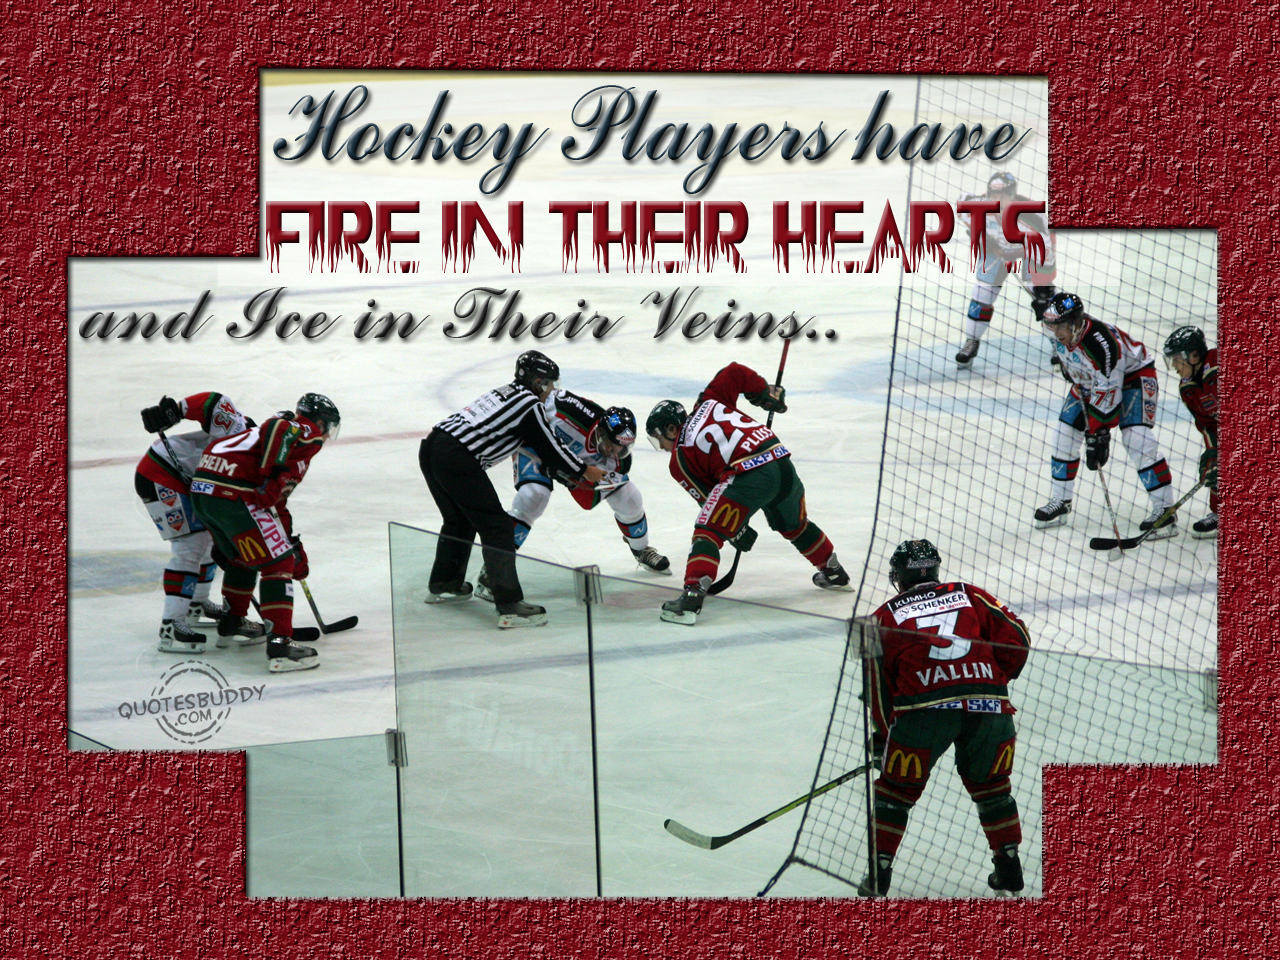 magazines time image for famous hockey quotes and sayings